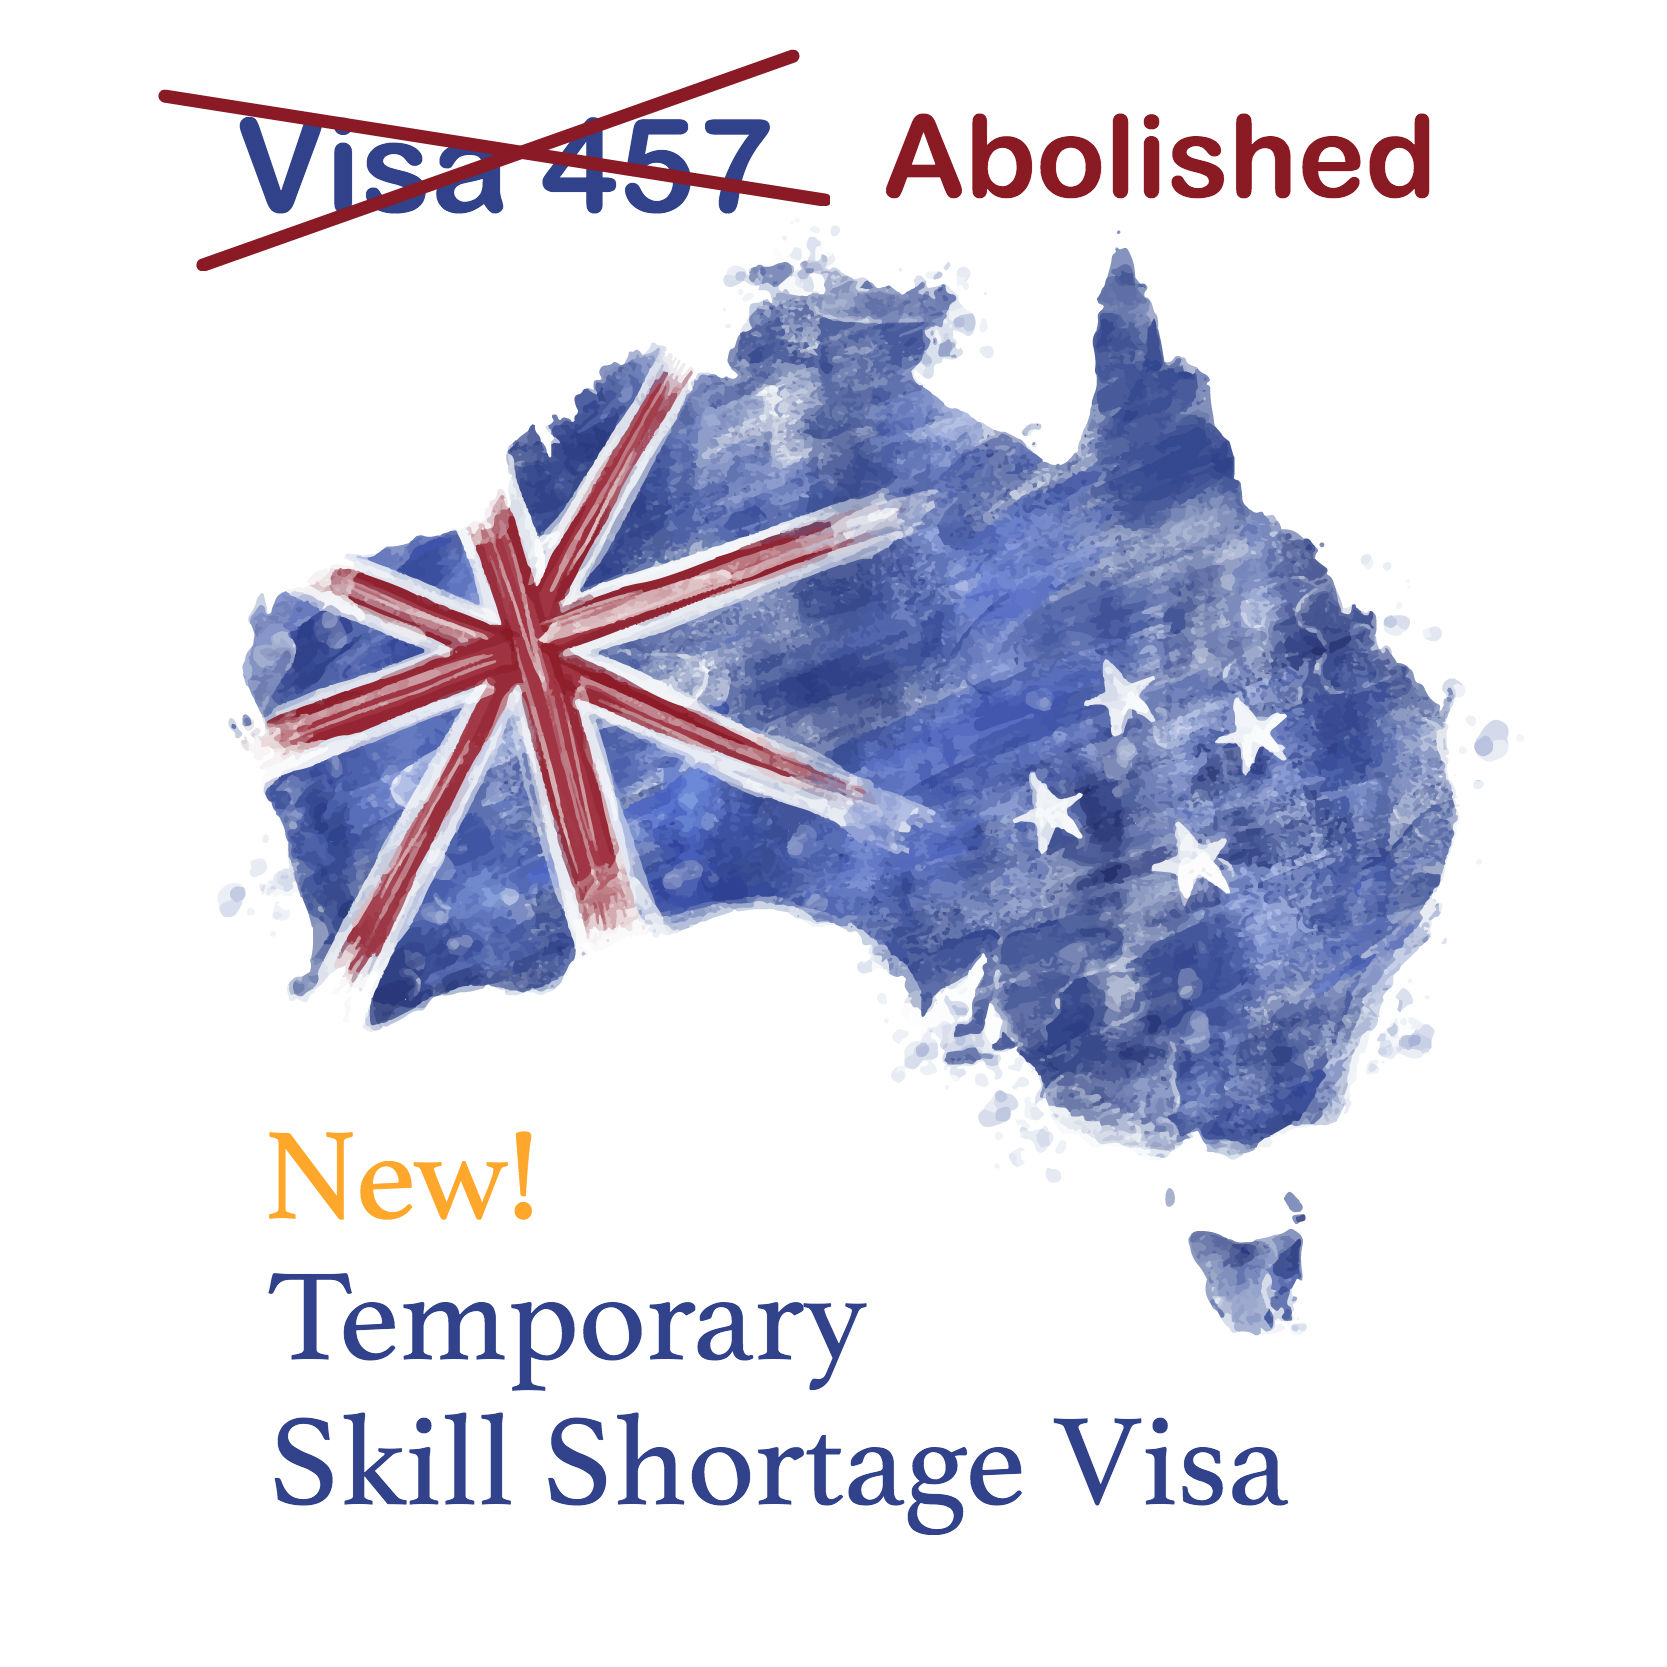 Current changes to the 457 visa ...